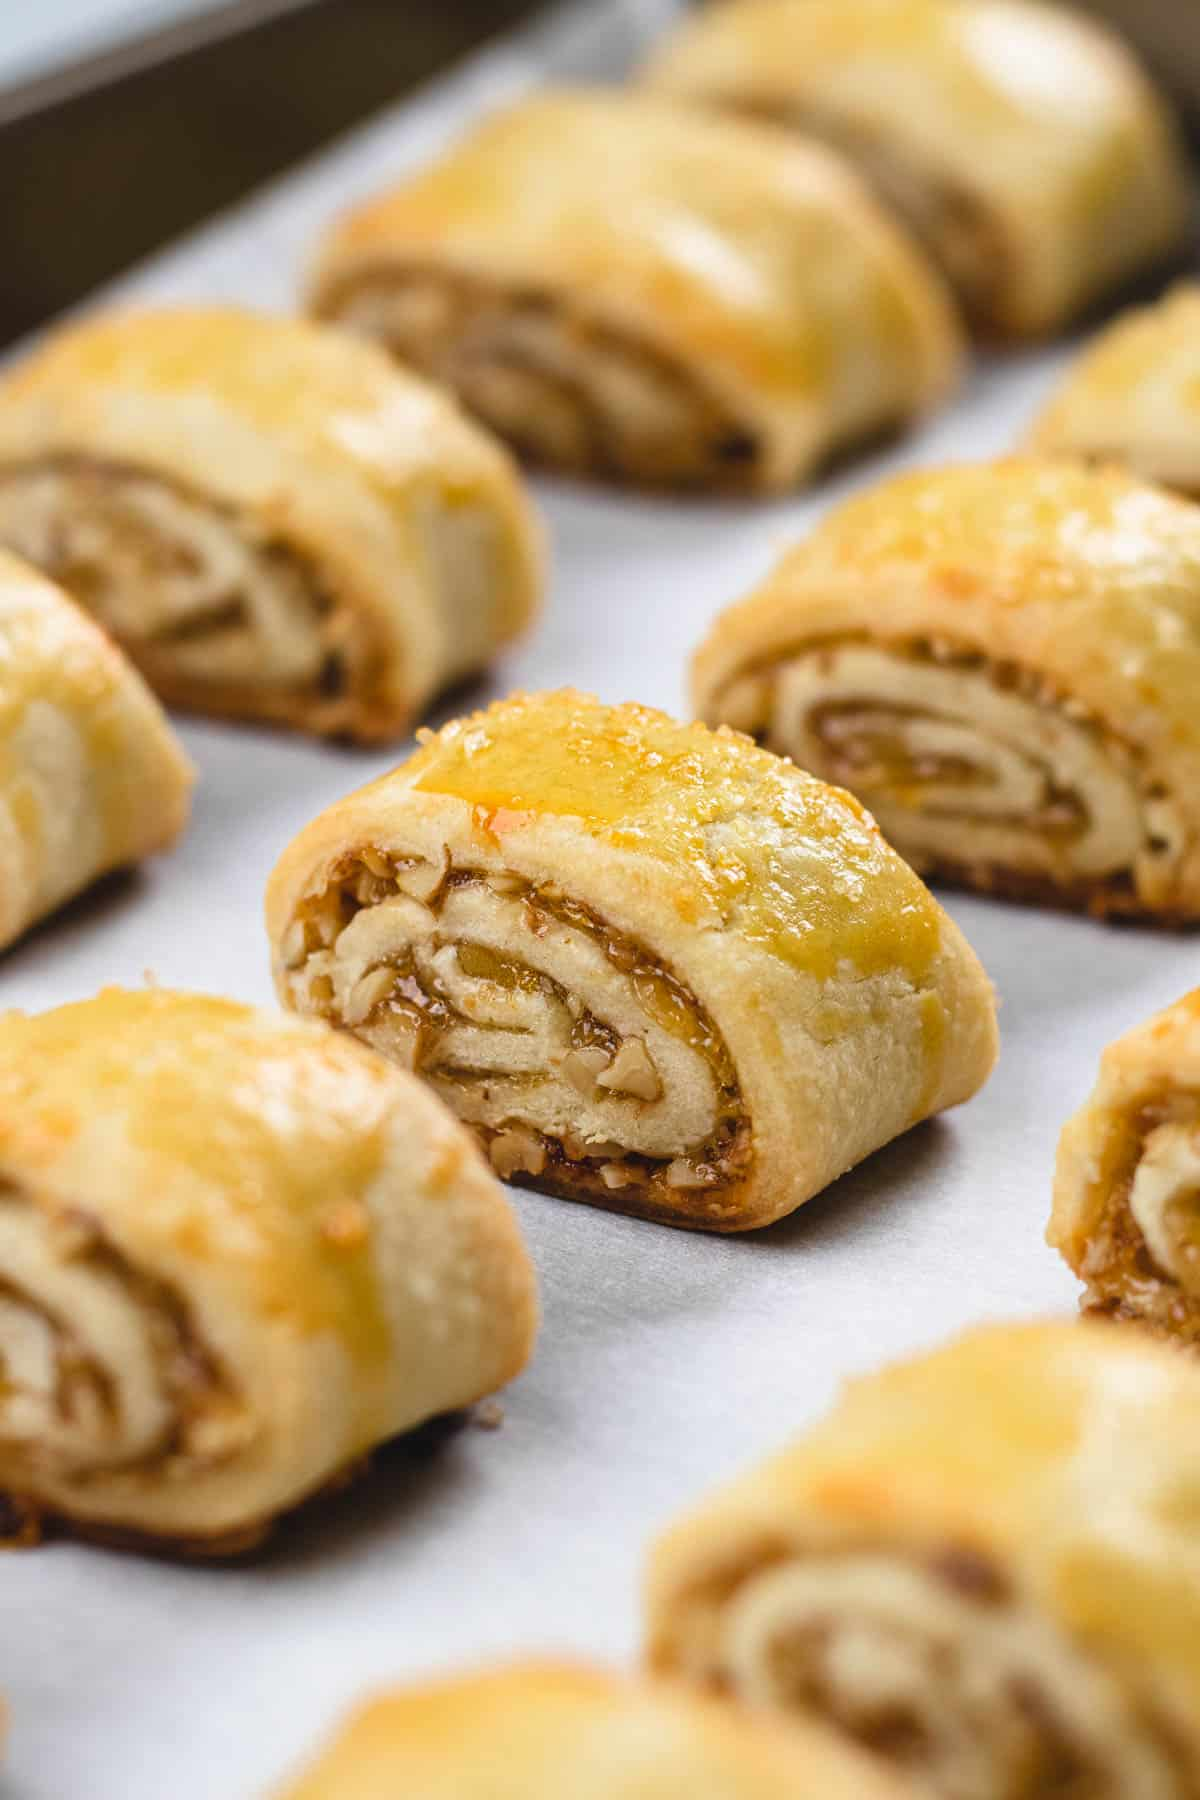 Baked Rugelach cookies on a baking sheet.